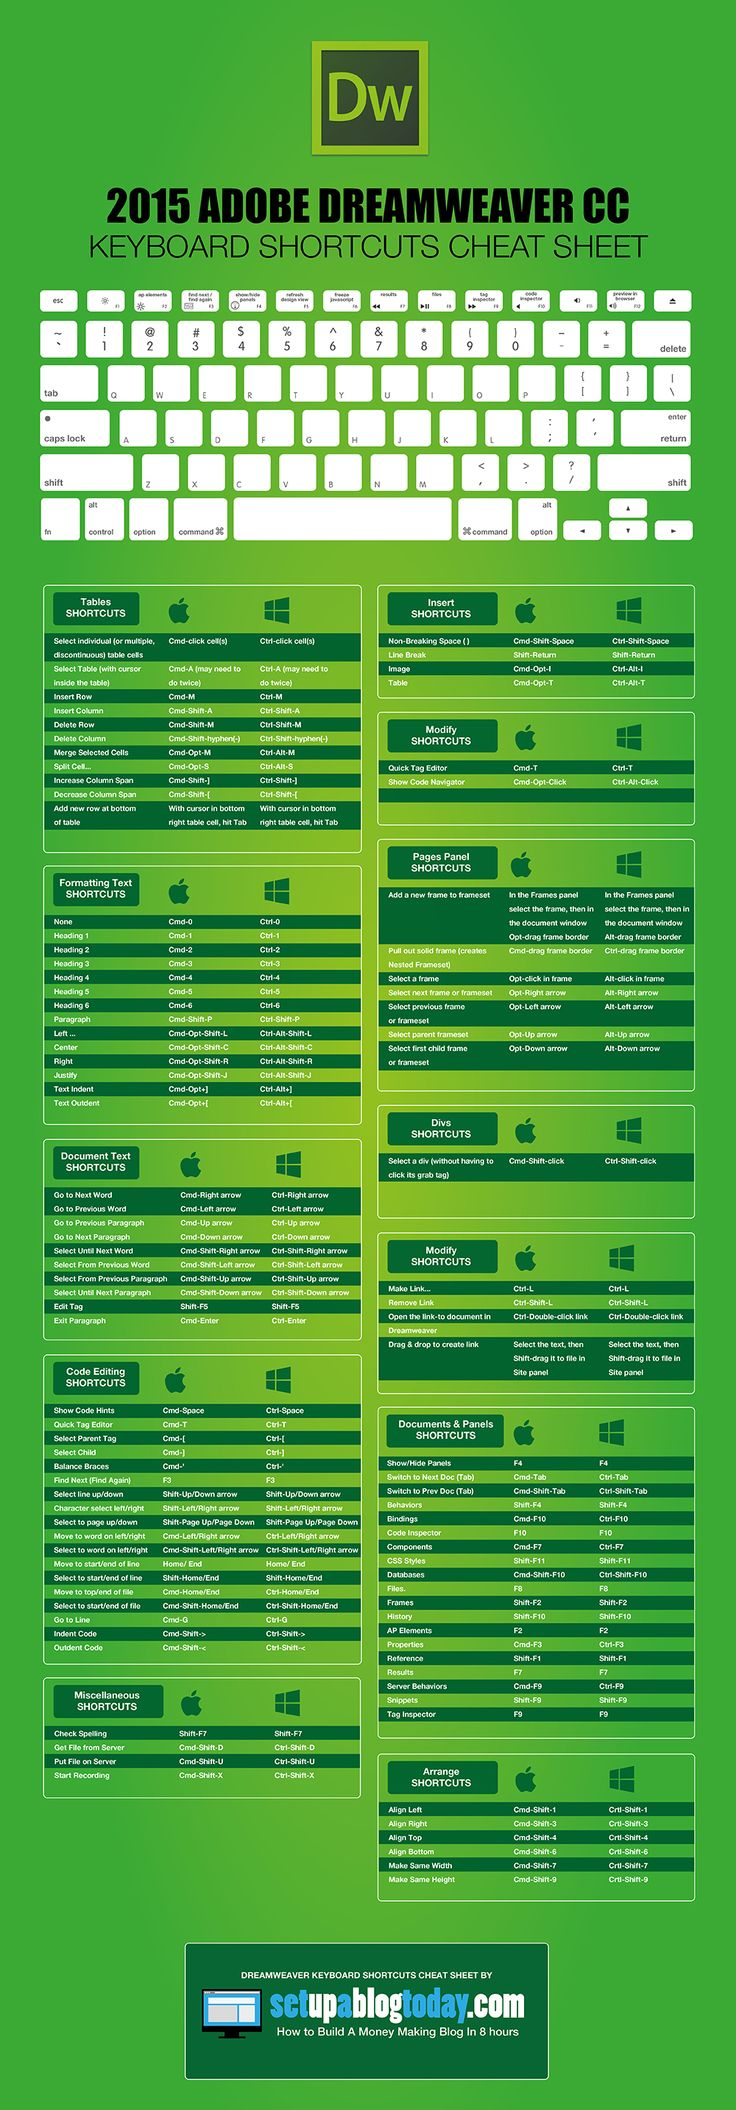 2015 Adobe Dreamweaver Keyboard Shortcuts Cheat Sheet [Infographic]